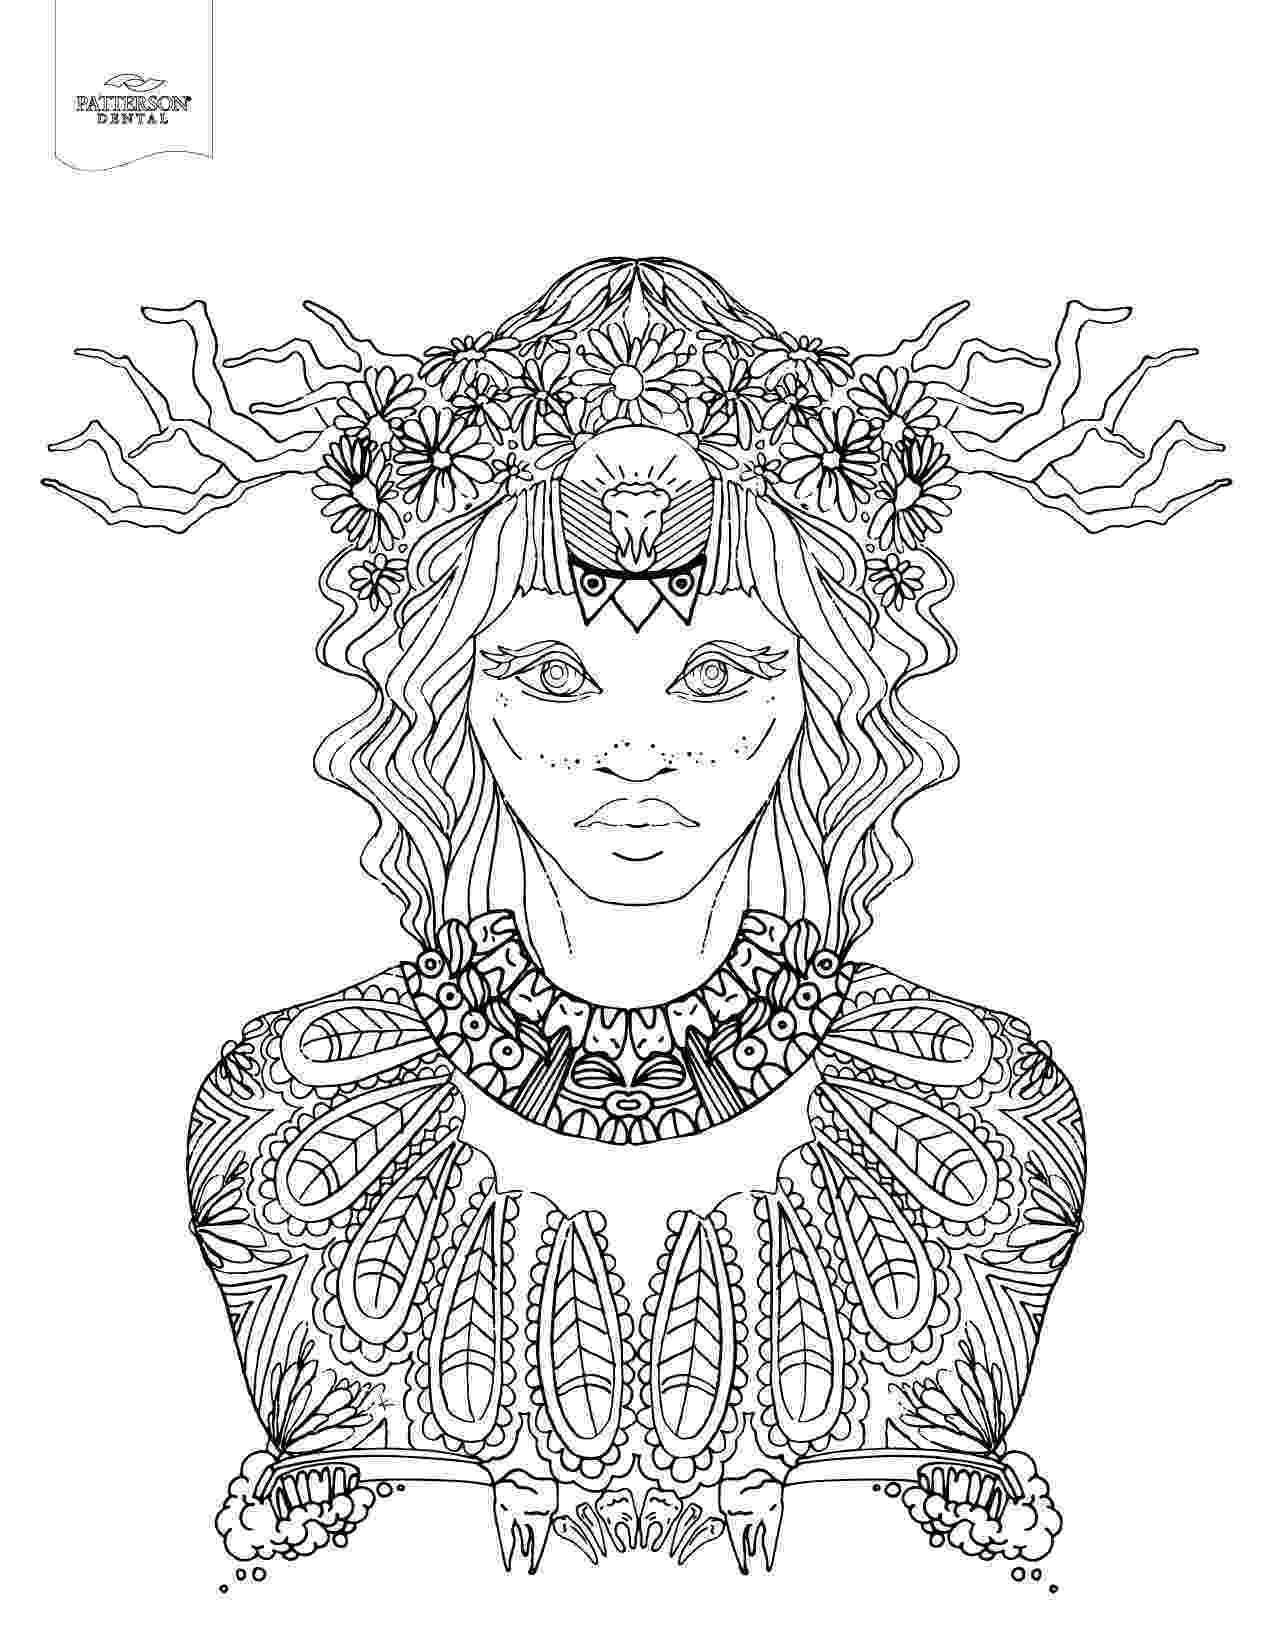 adult coloring pages online 10 toothy adult coloring pages printable off the cusp pages coloring adult online